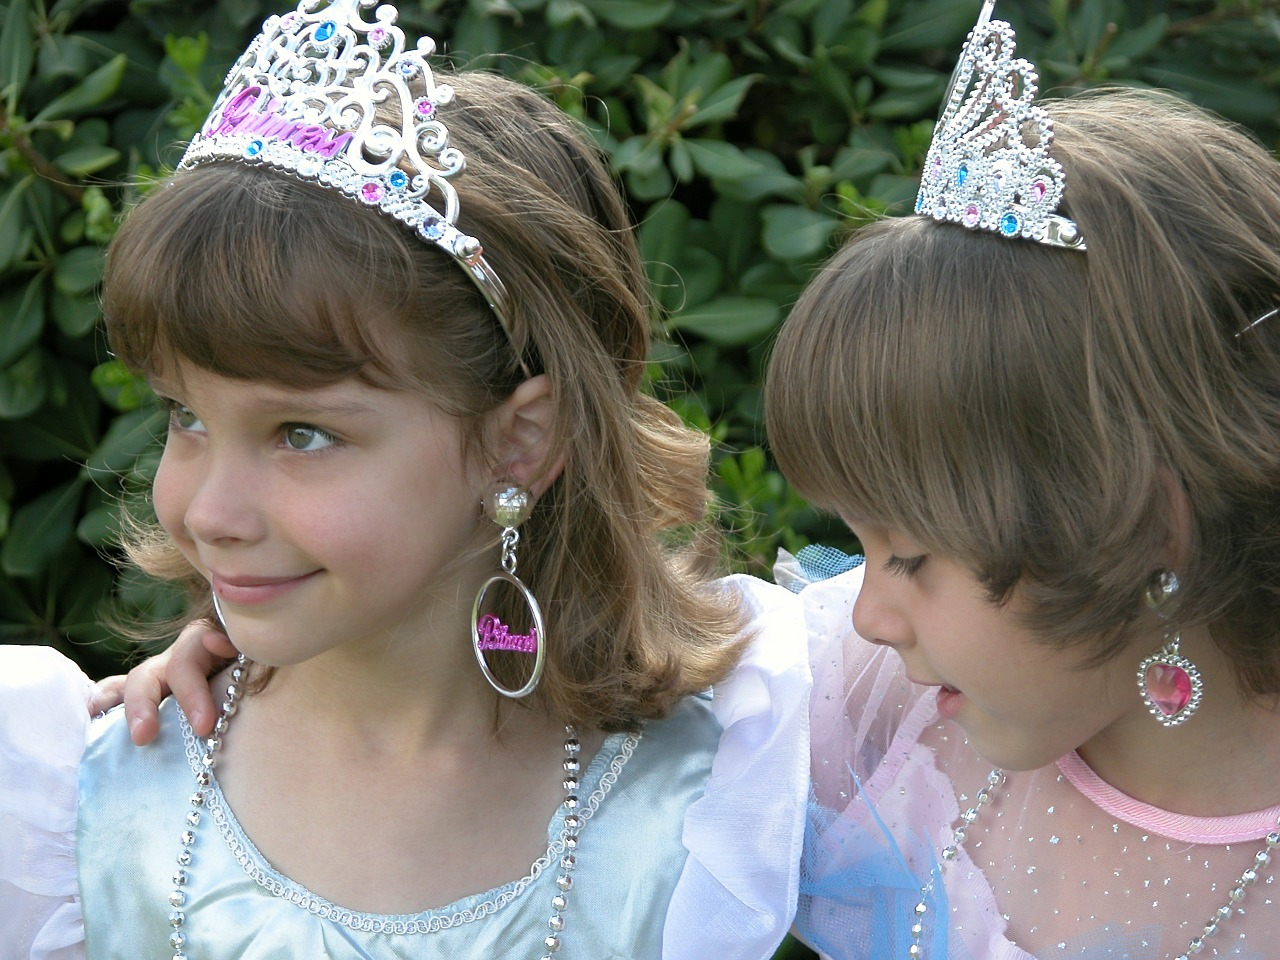 Princess Dresses For Little Girls - Top 10 Amazon Pics at www.kidslovedressup.com